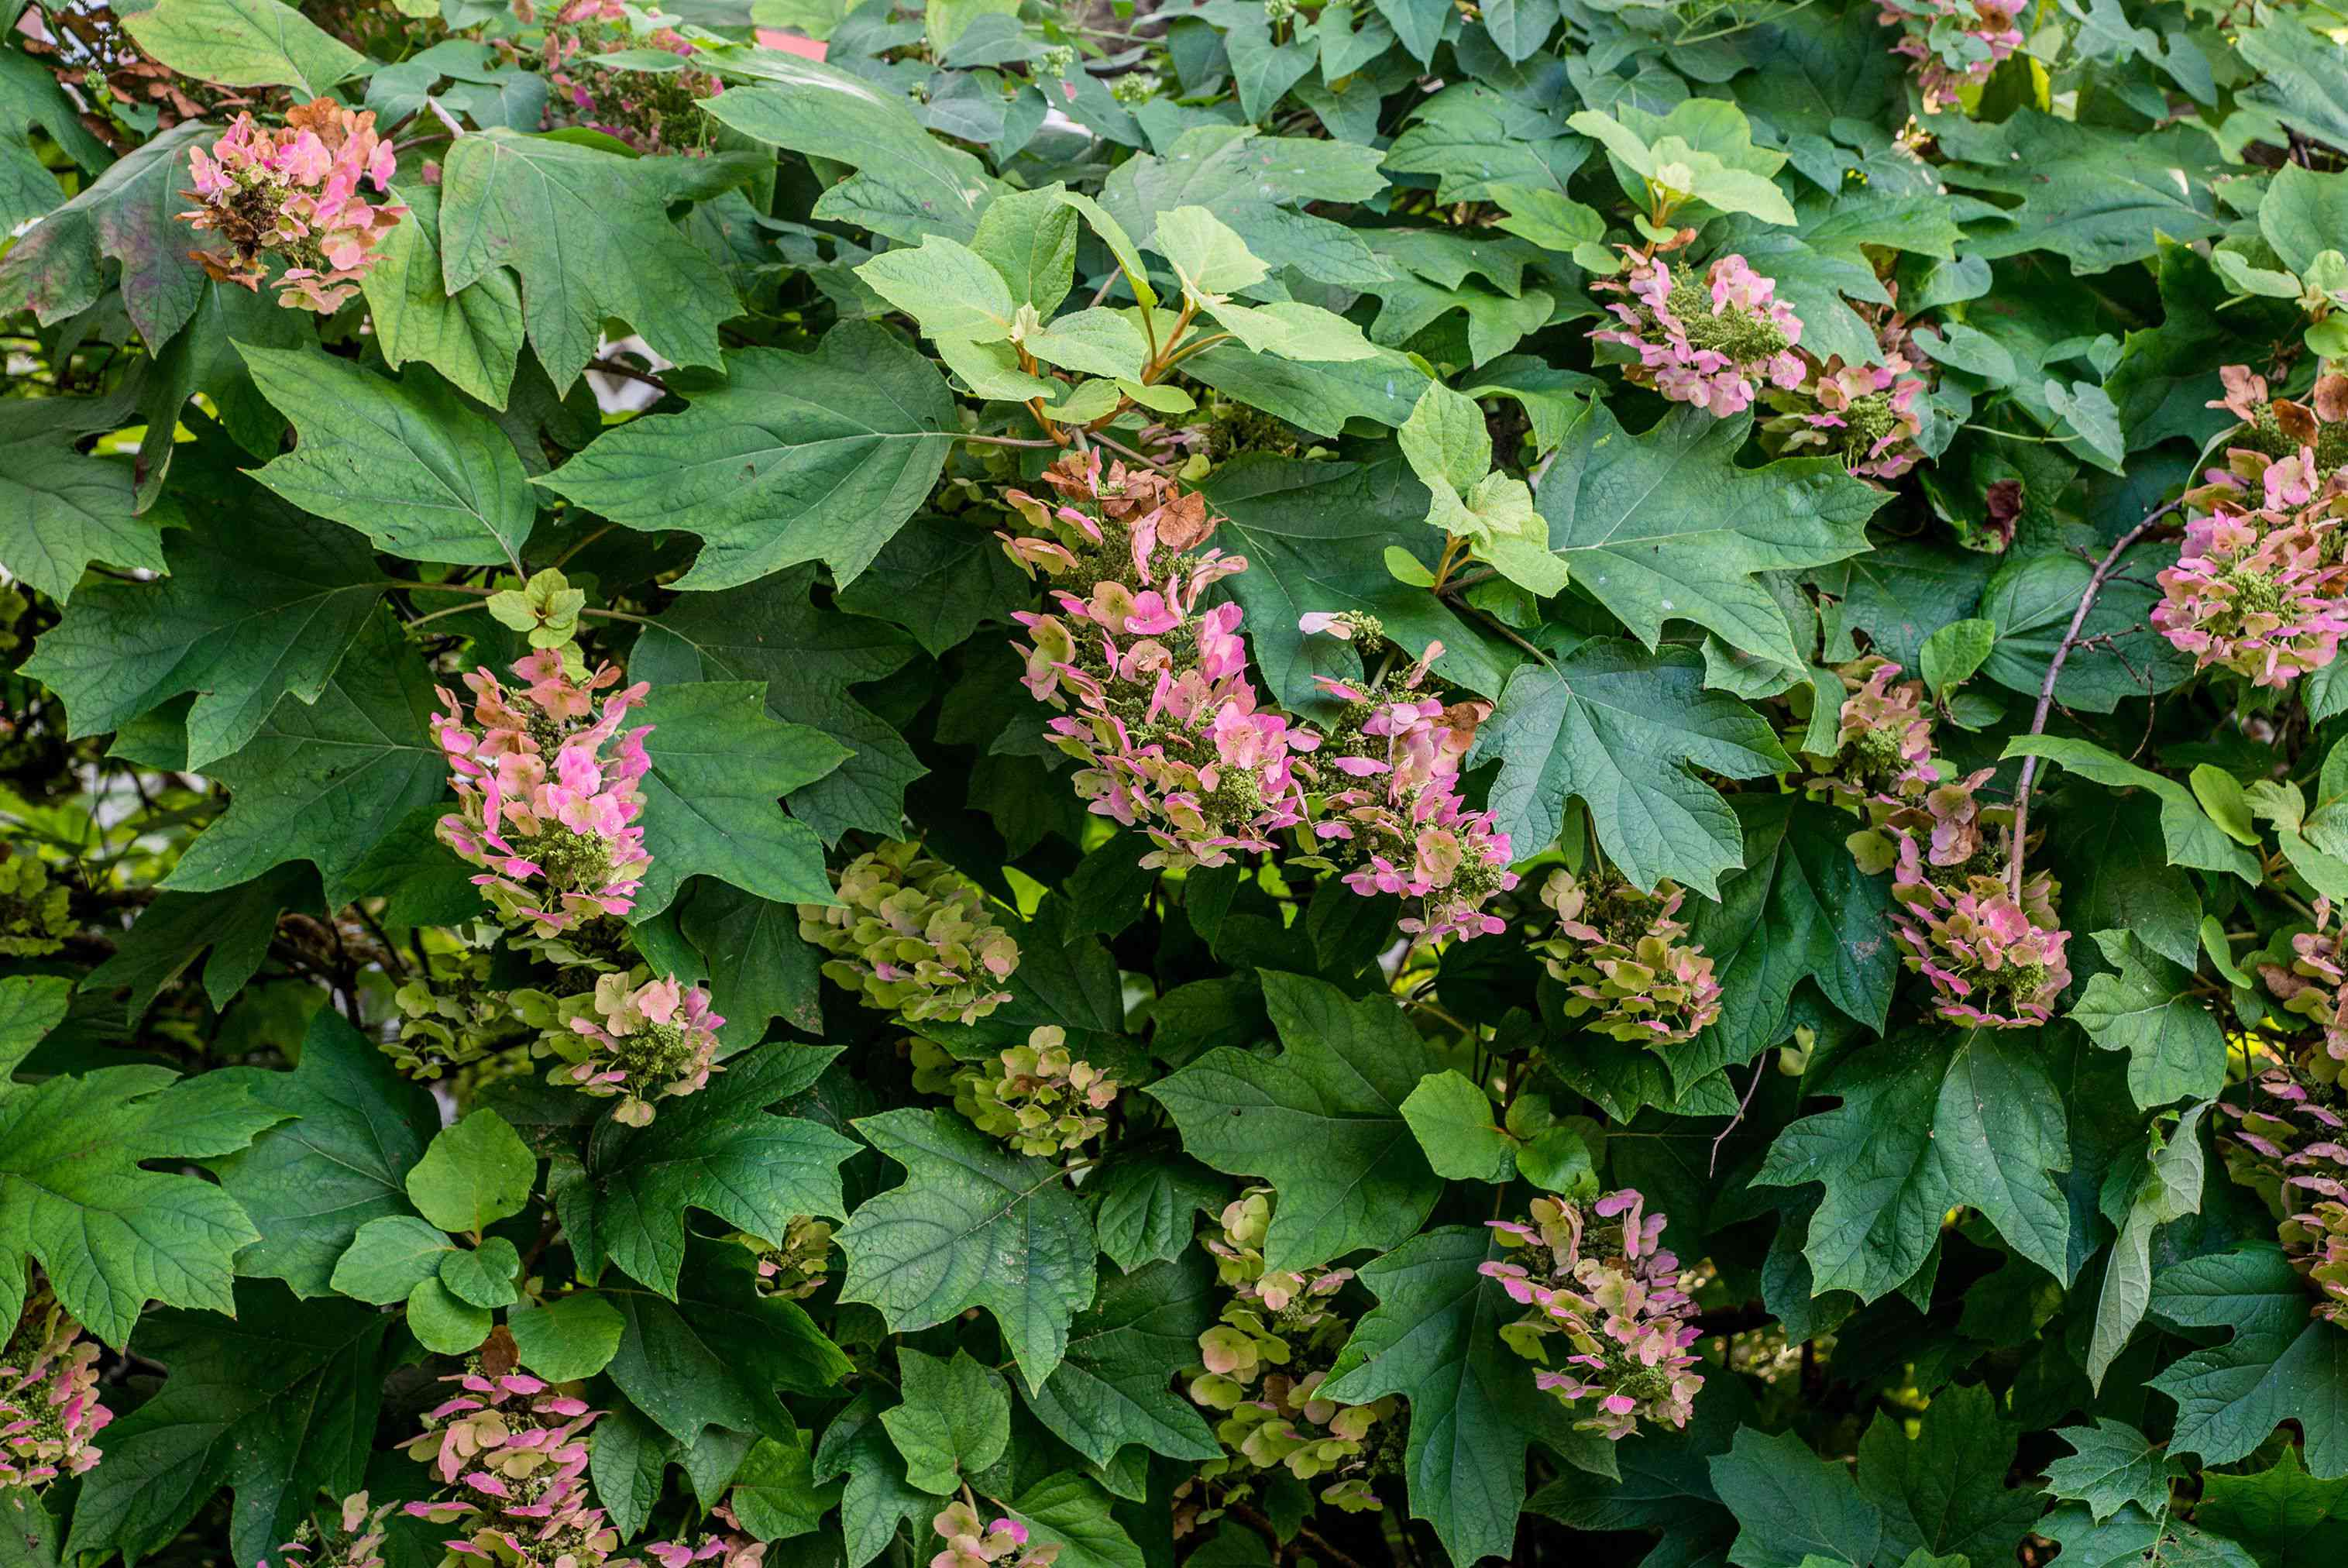 Oakleaf hydrangea bush with large green leaves and small pink